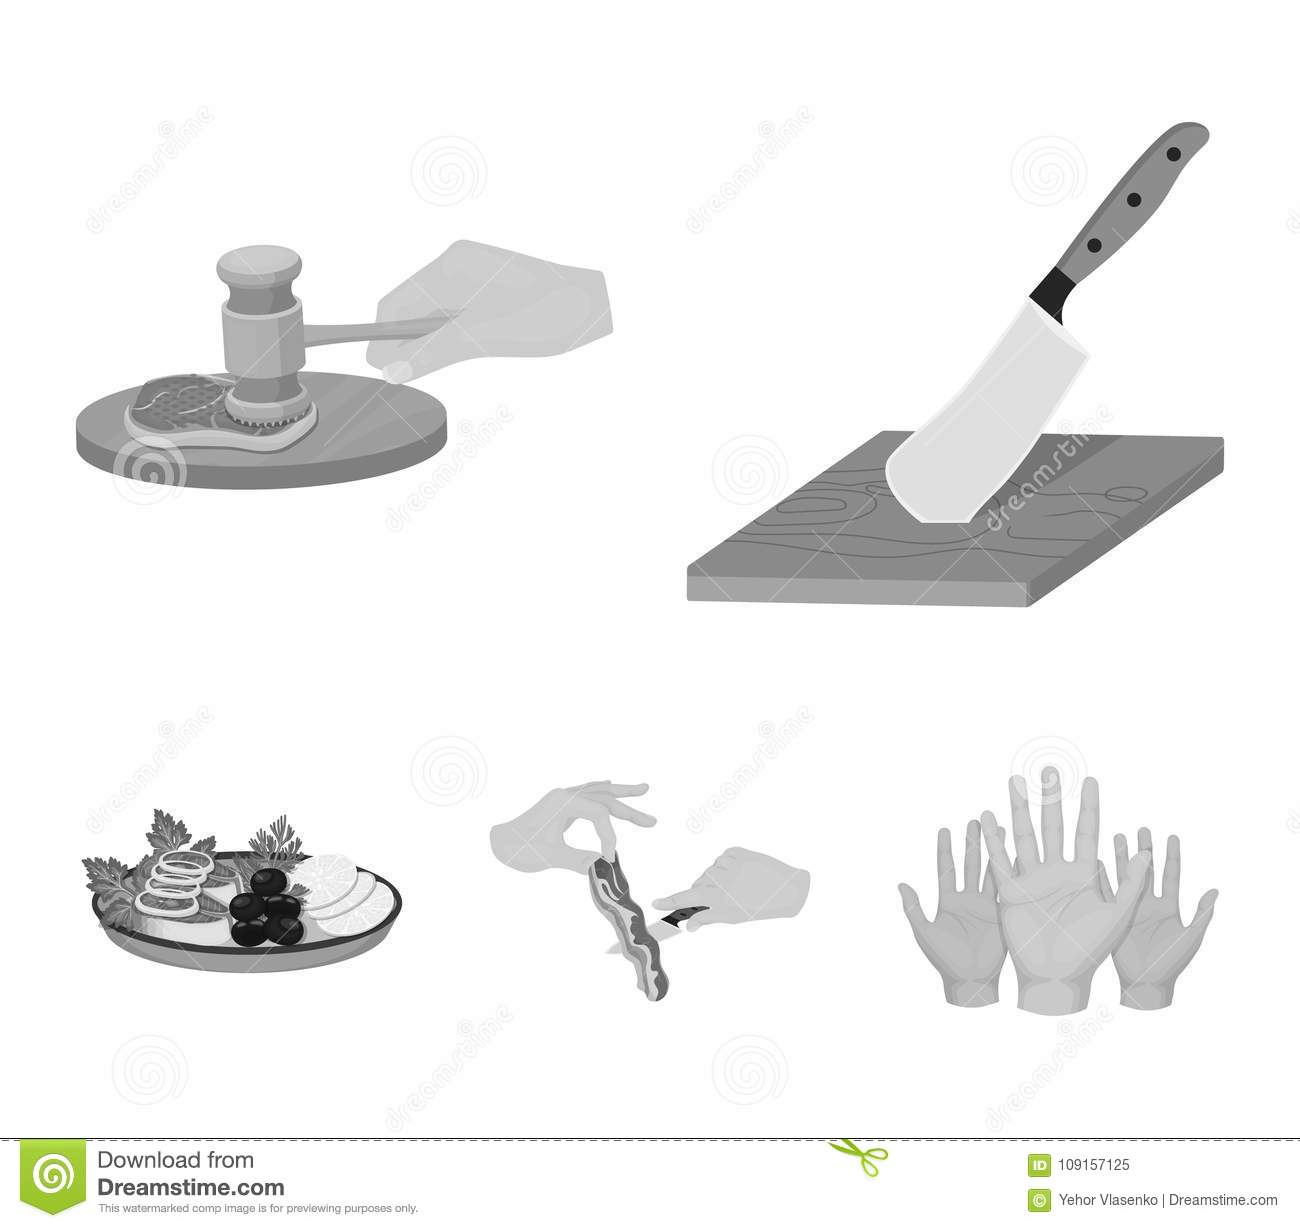 Hammer with vegetables and others